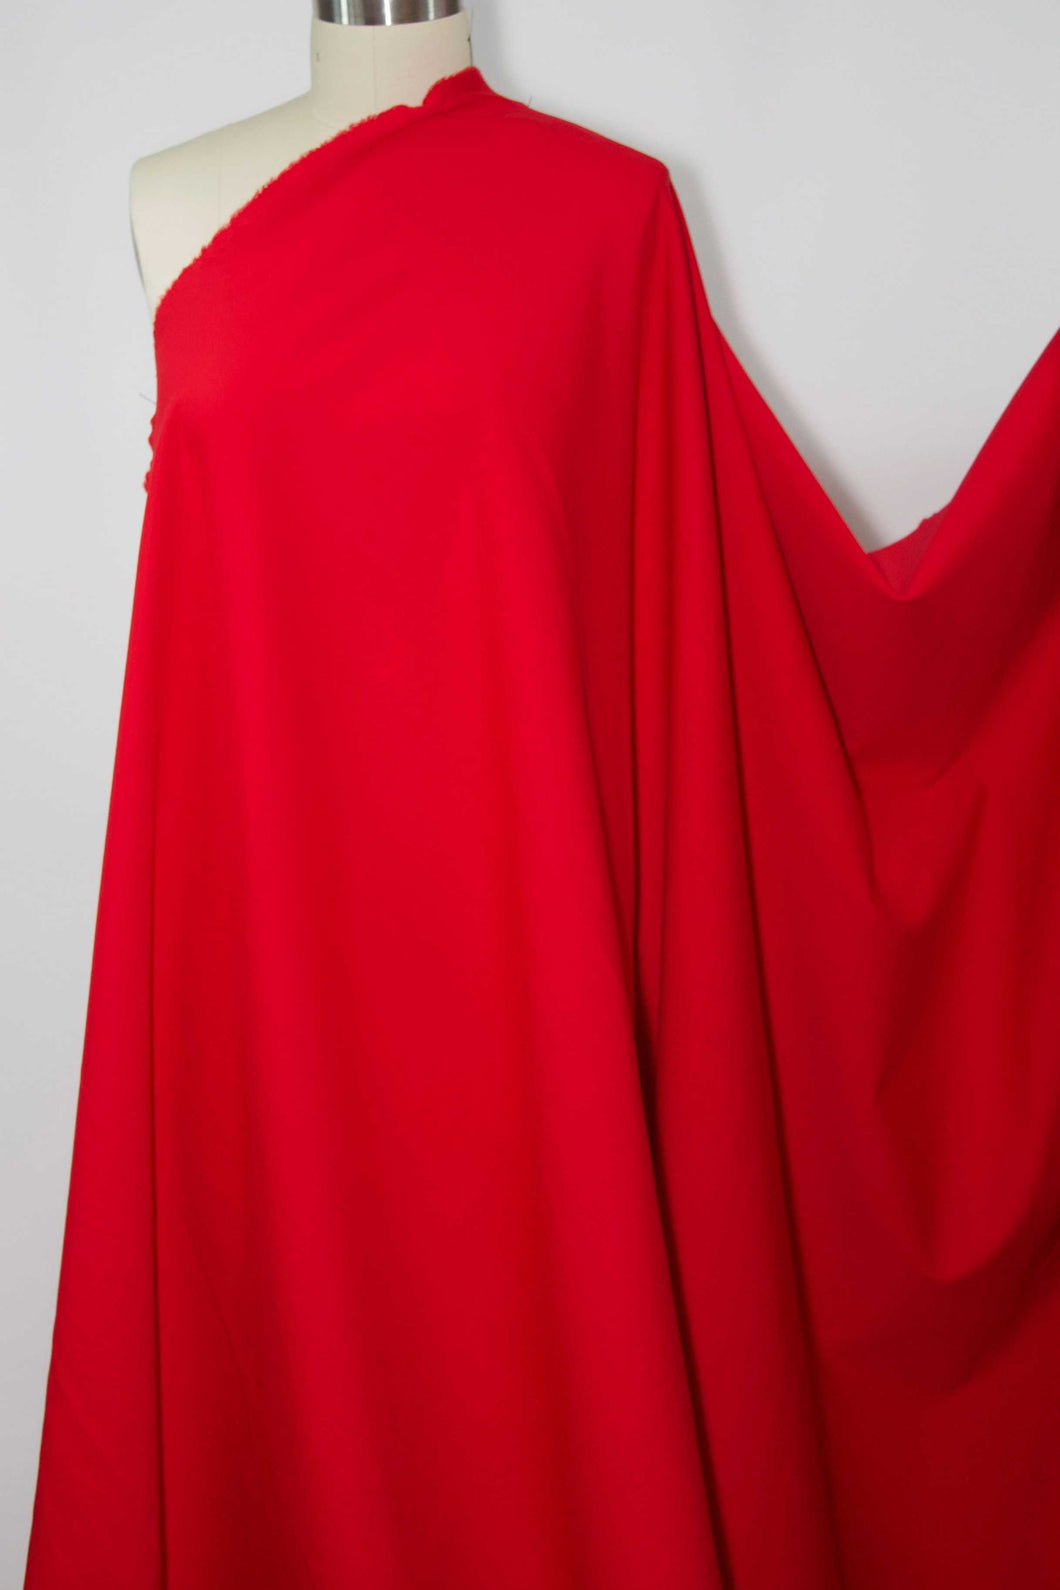 Designer Rayon Double Knit - True Red